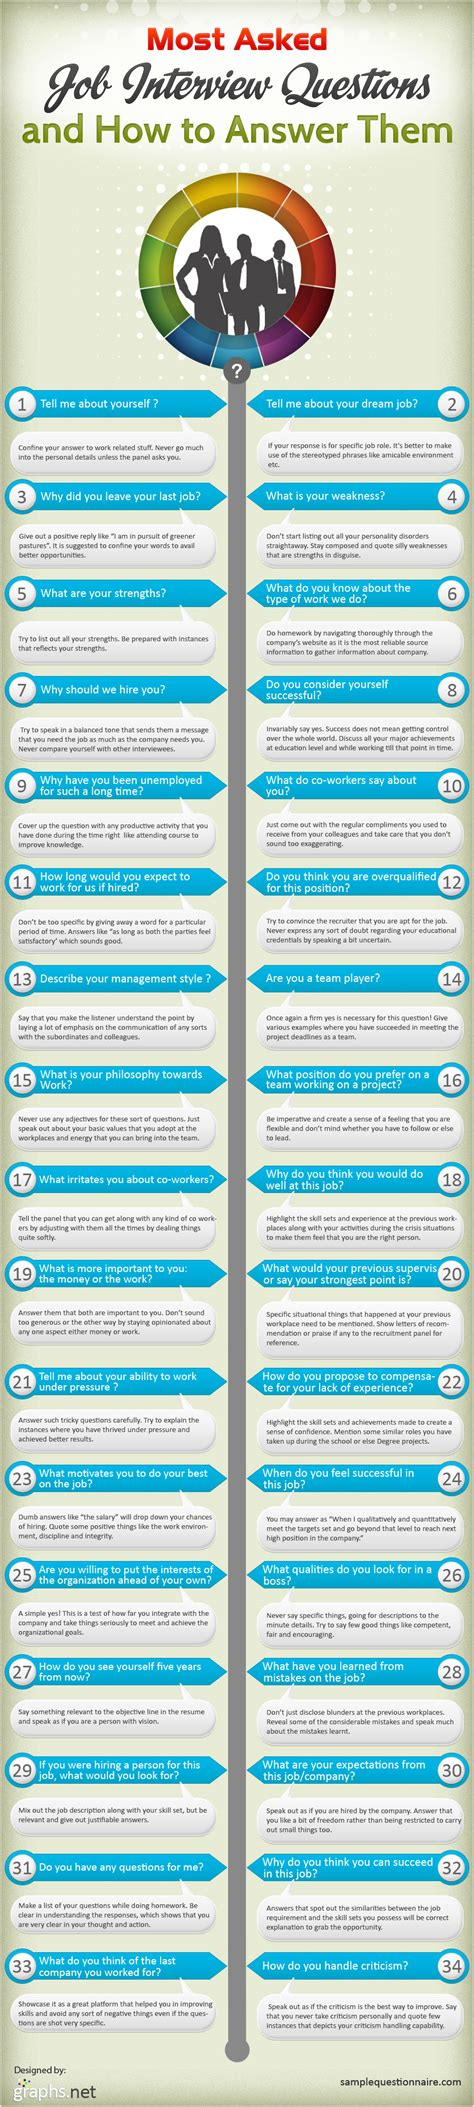 How To Answer Commonly Asked Question At Job Interview  Digital Information World